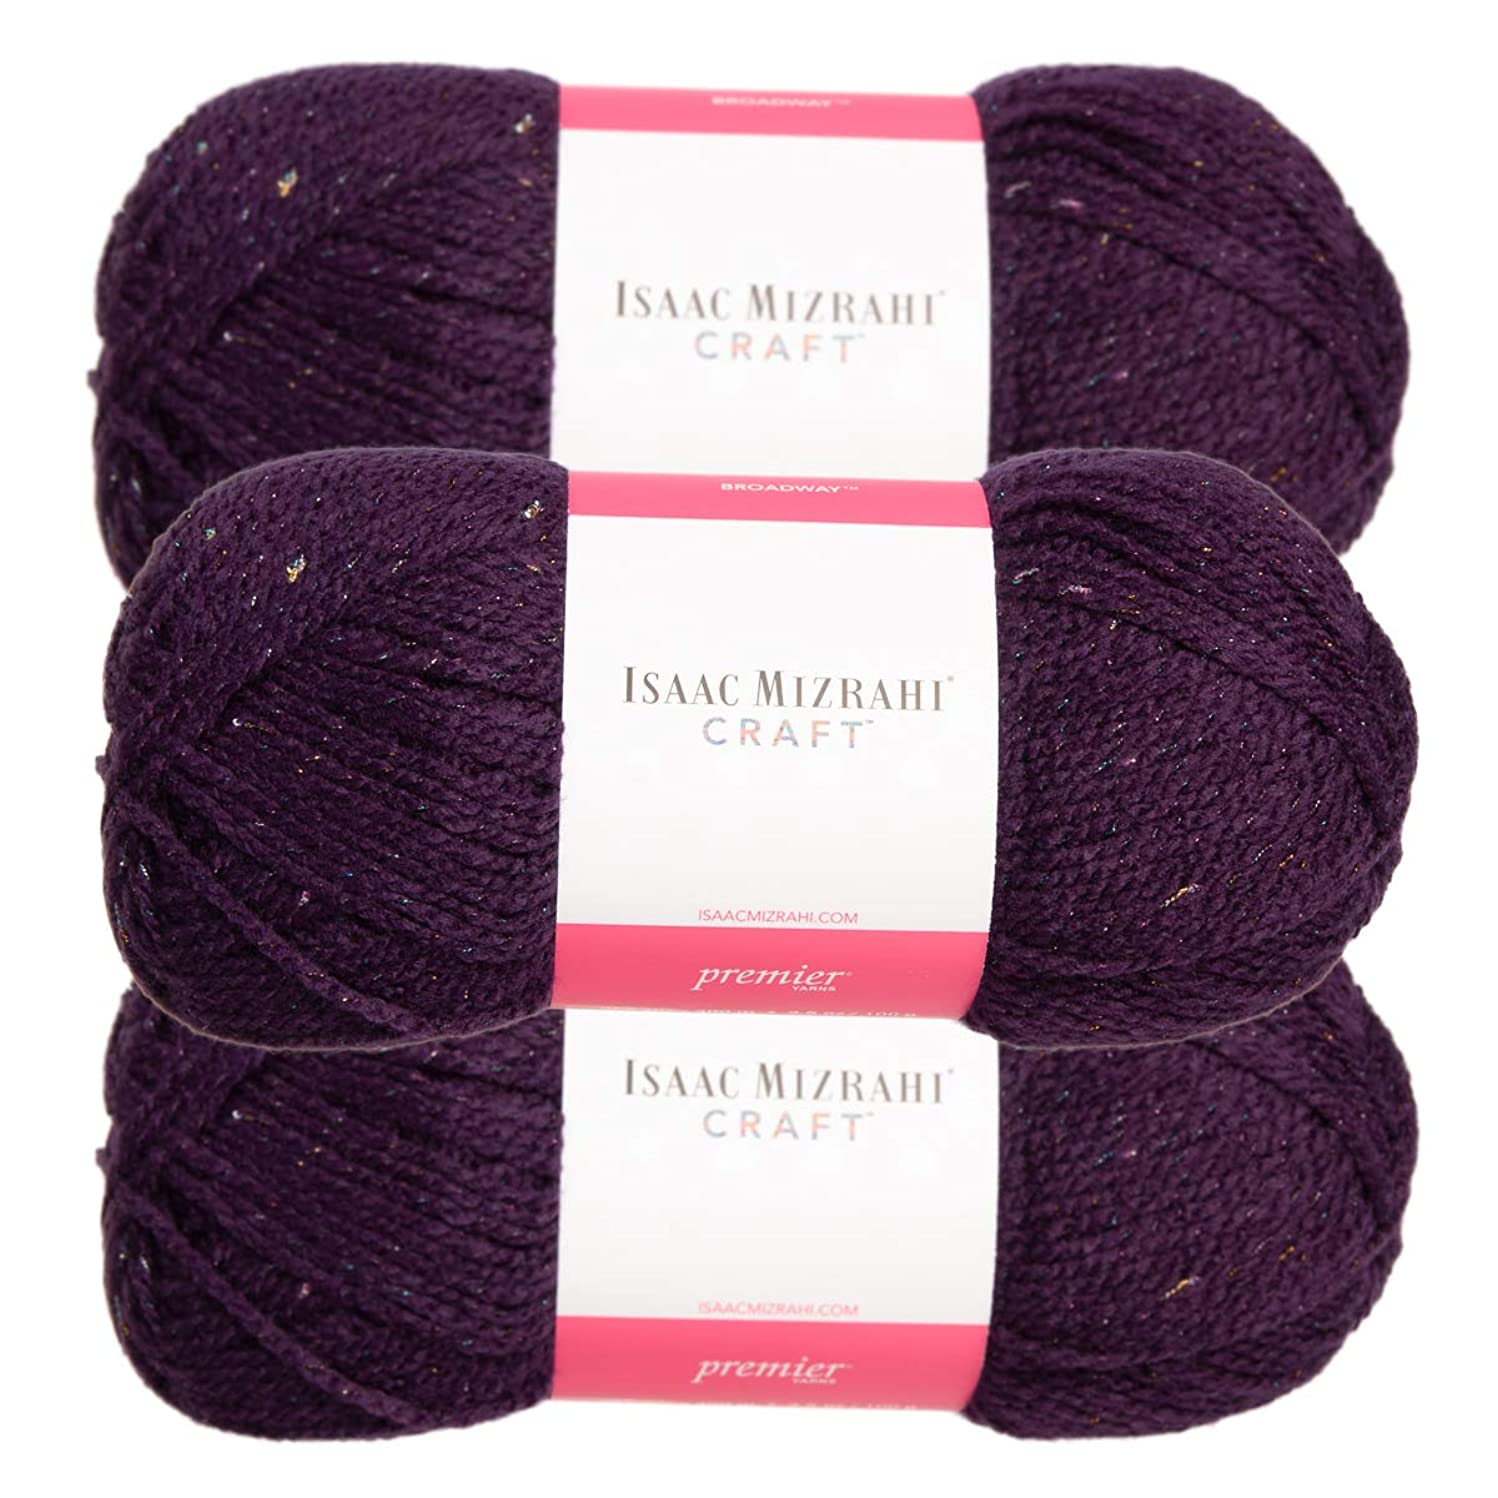 Premium Yarns (3 Pack Isaac Mizrahi Broadway Acrylic Soft Ambassador Purple Yarn for Knitting Crocheting #4 Medium